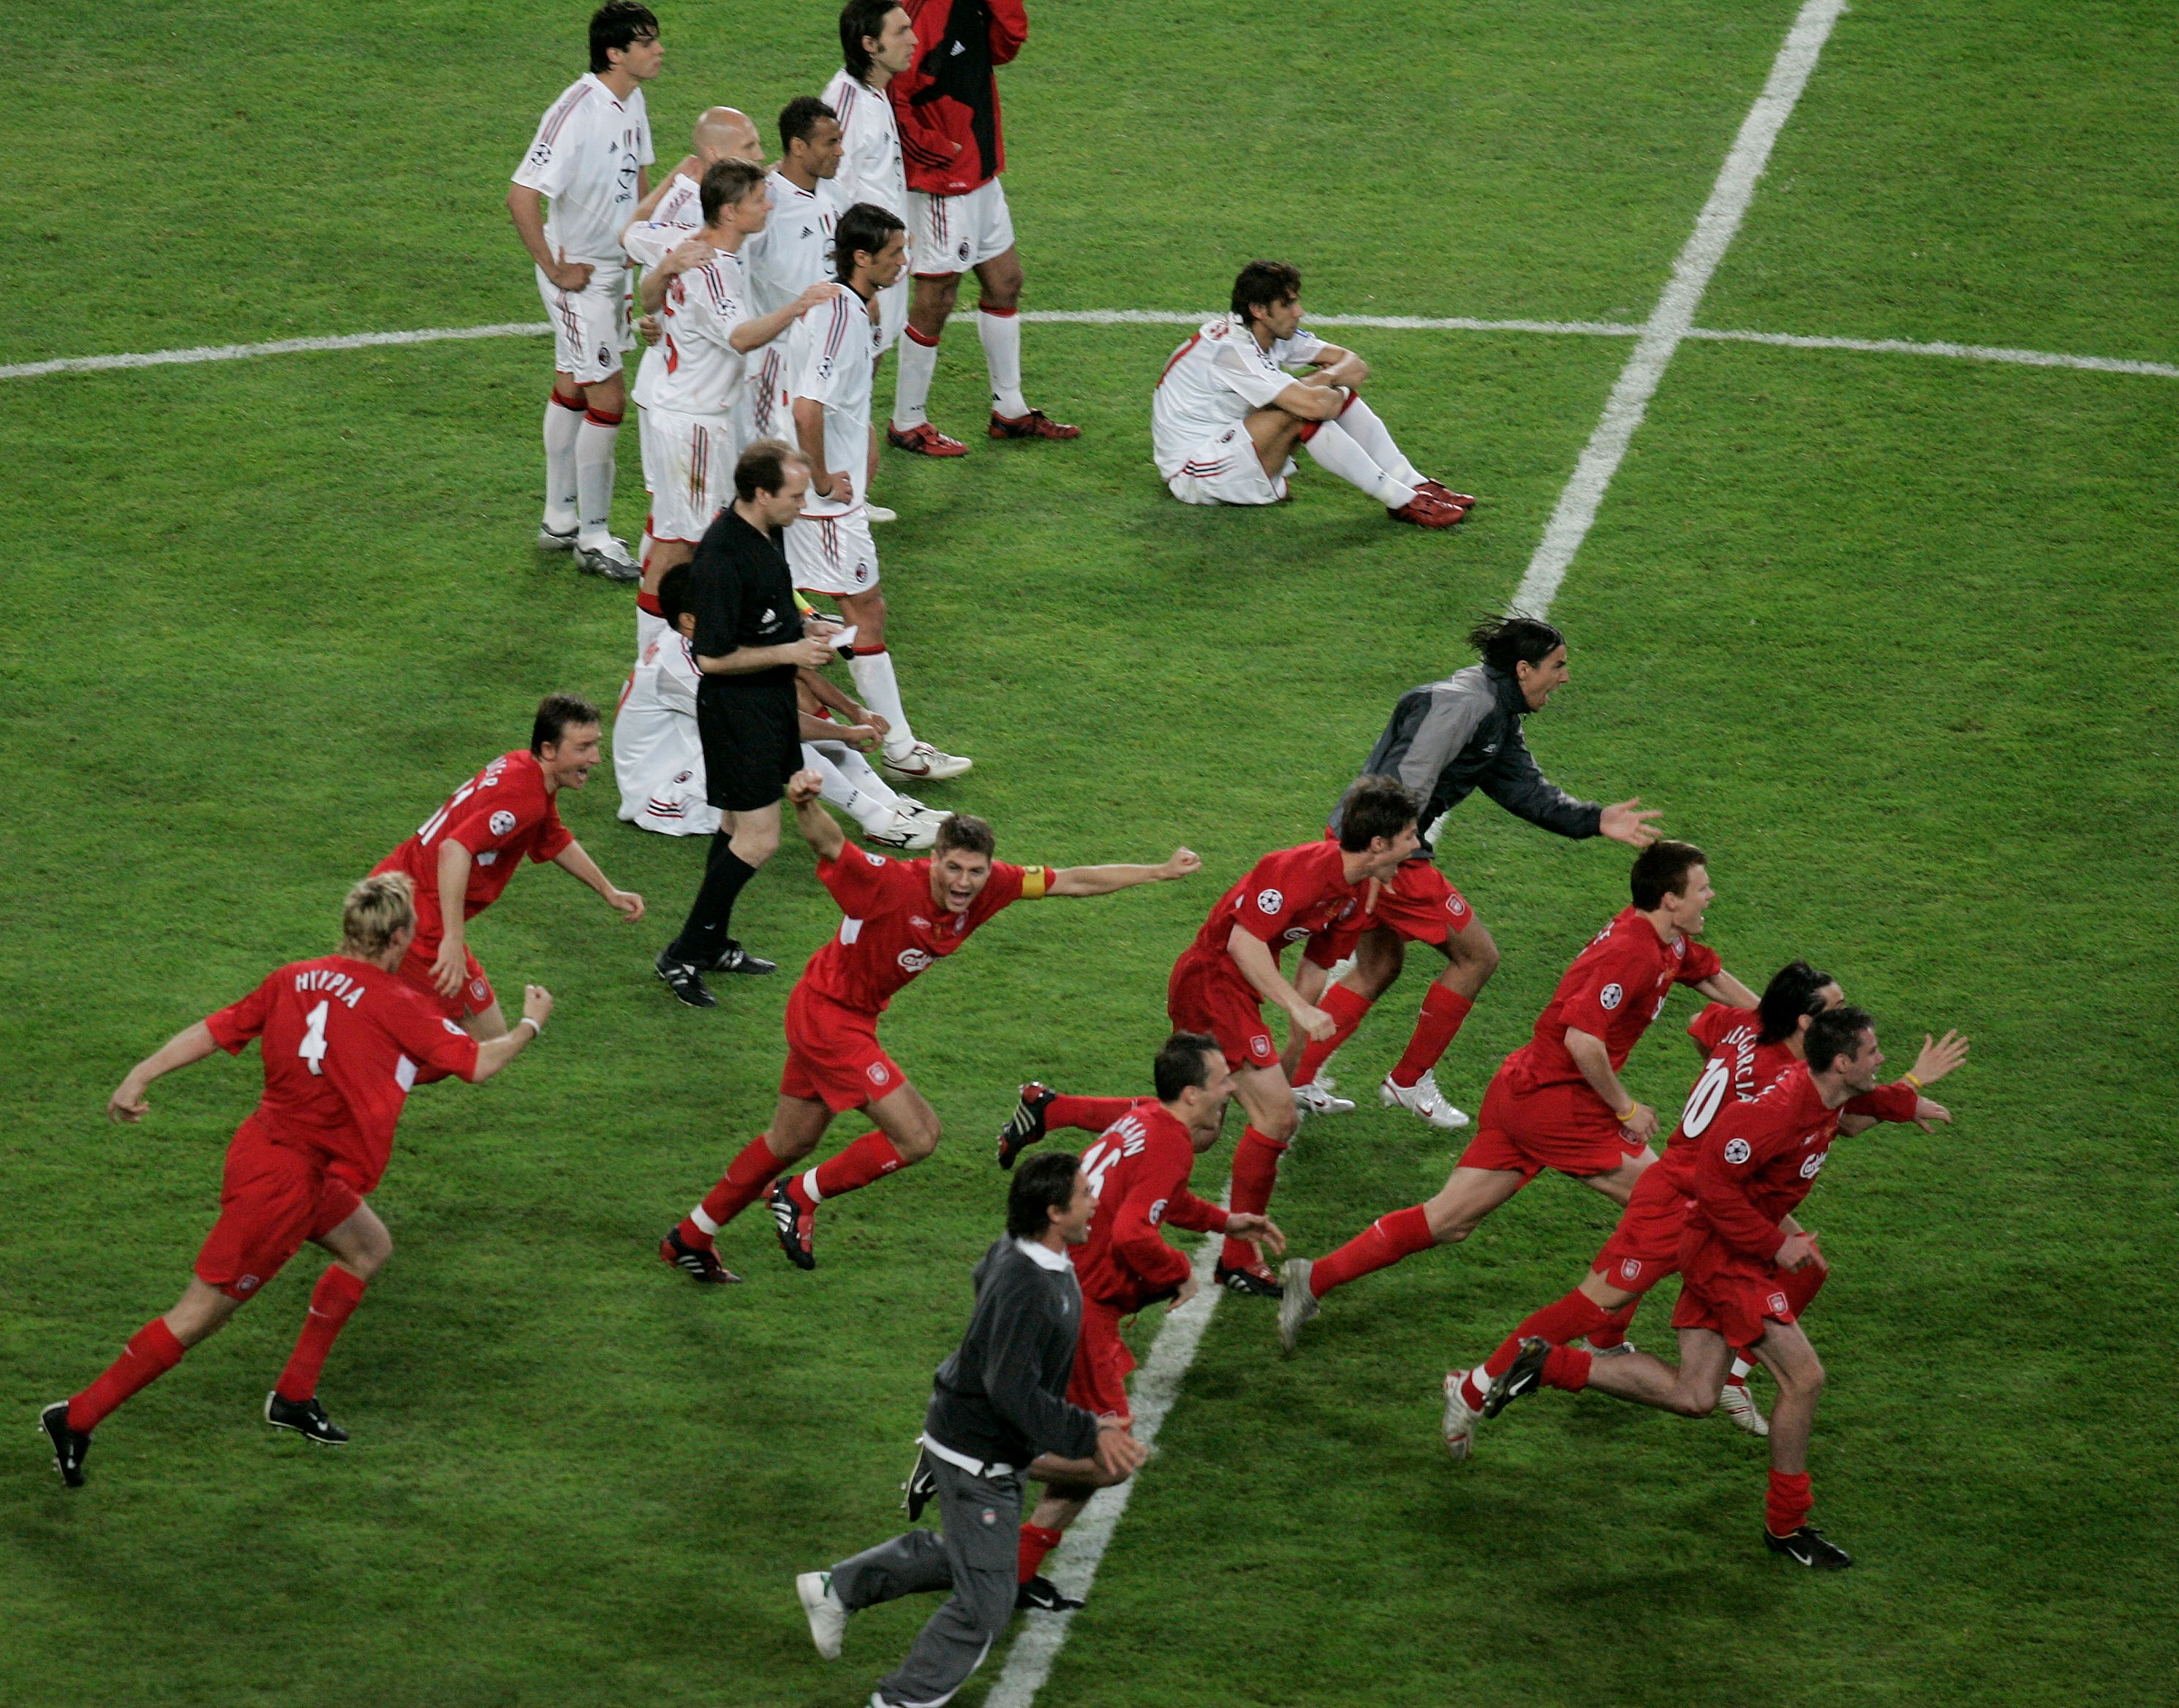 ISTANBUL, TURKEY - MAY 25: Liverpool celebrate after they won European Champions League final between Liverpool and AC Milan on May 25, 2005 at the Ataturk Olympic Stadium in Istanbul, Turkey.    (Photo by Getty Images/Getty Images)